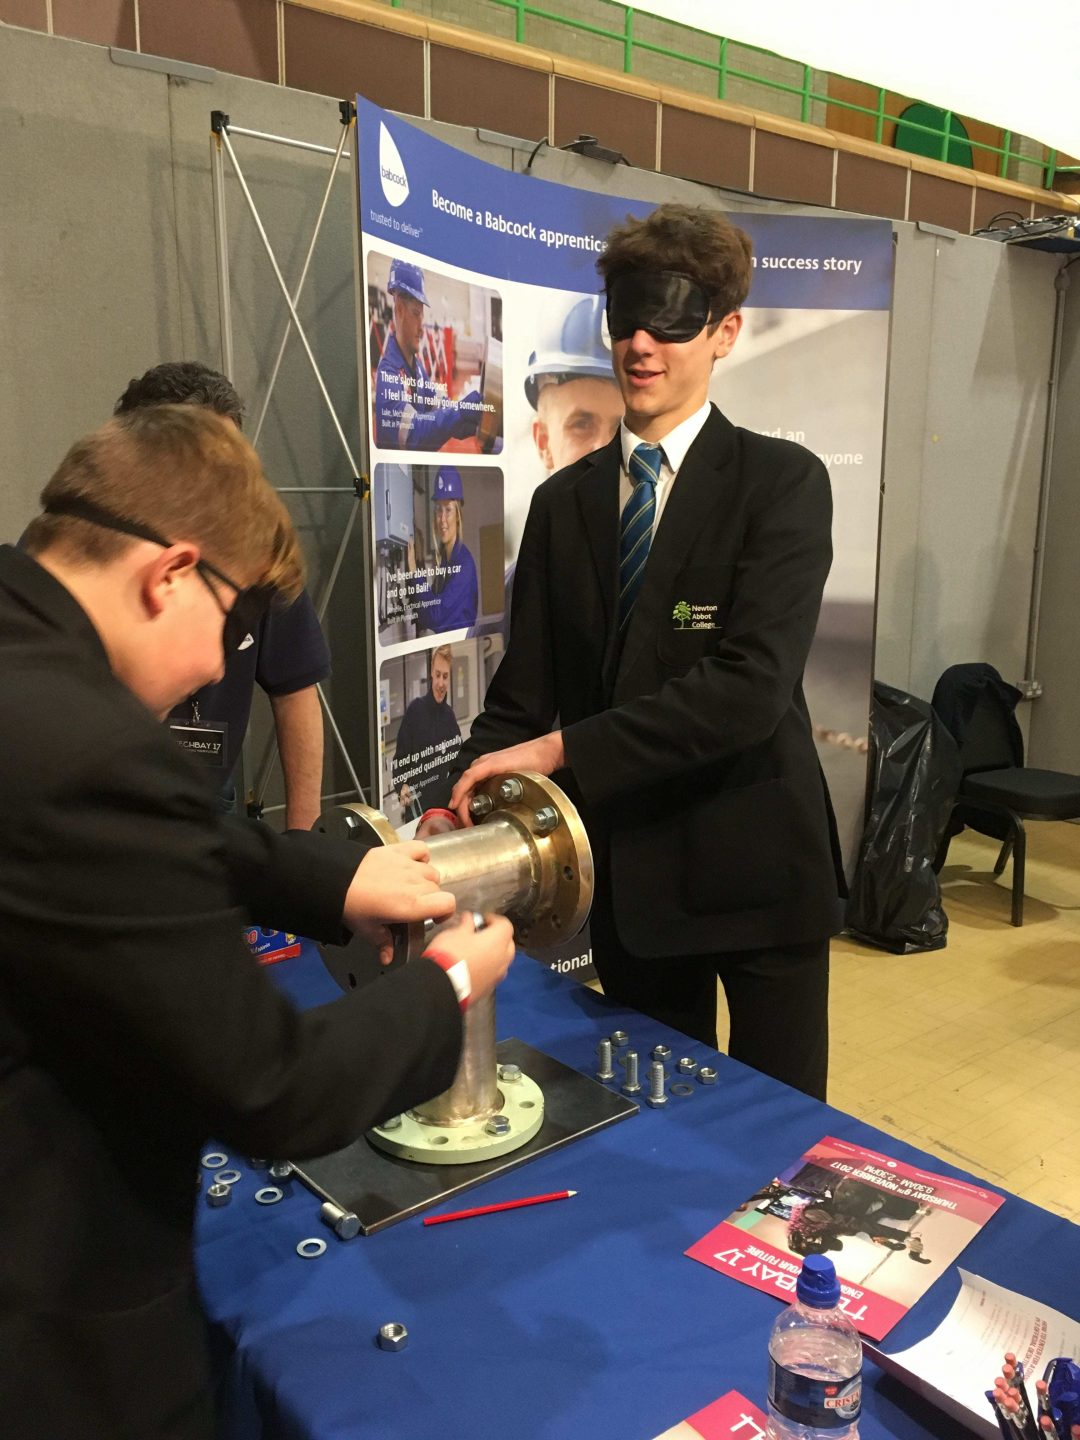 Year 10 Tom Keight at one of the TechBay stands